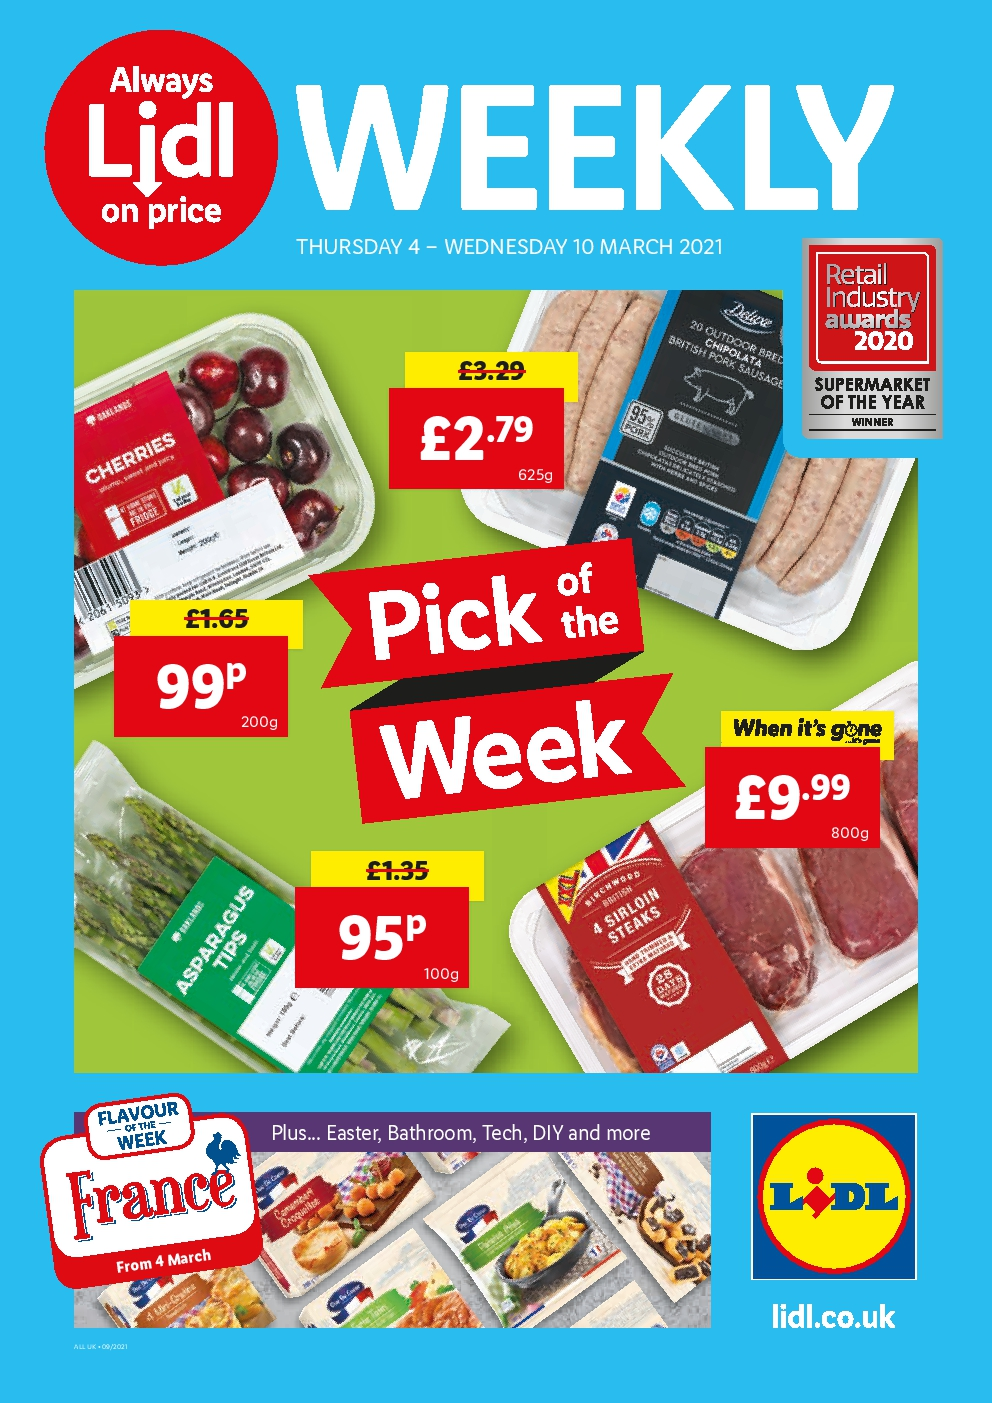 LIDL Offers This Week 4th Mar to 10th Mar 2021 LIDL Special Buys Preview